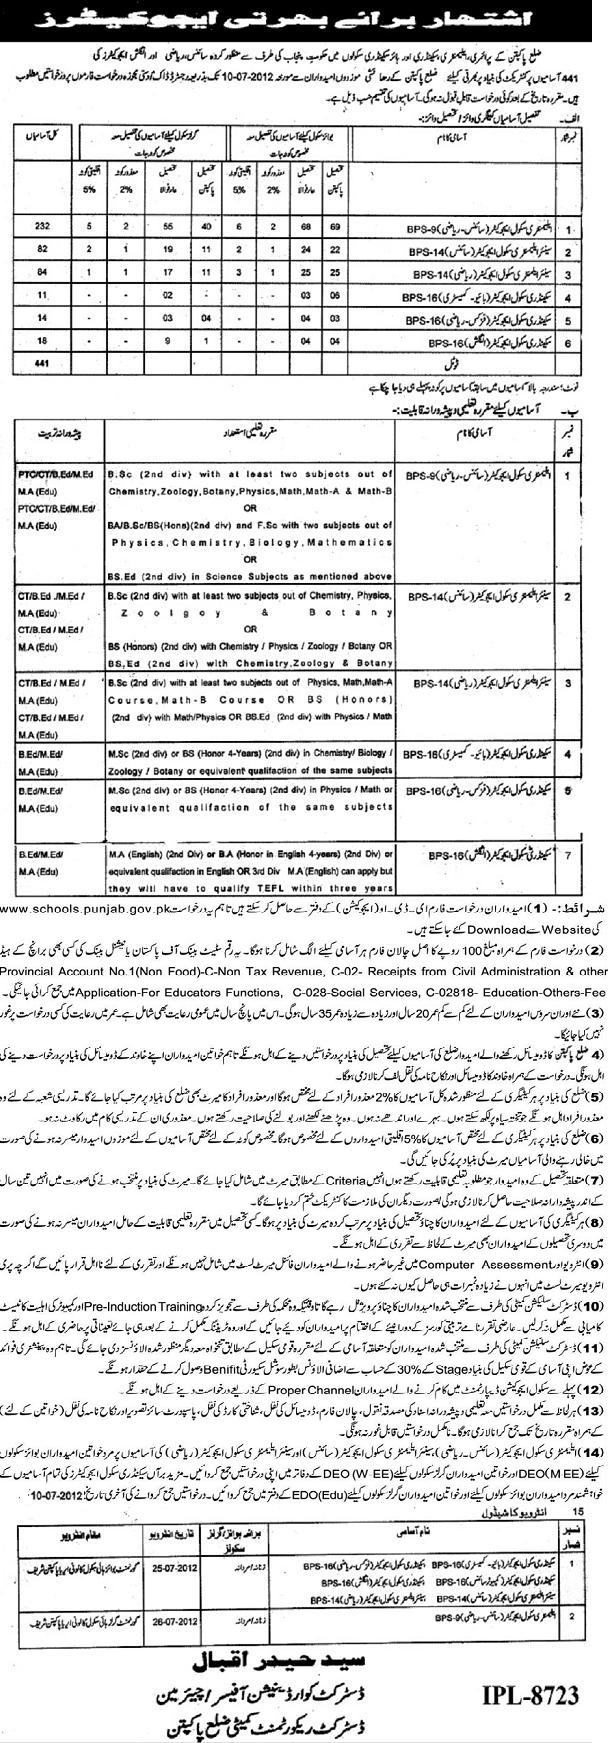 Educators Jobs / Vacancies 2012 District Pakpattan (Last Date 10-7-2012)